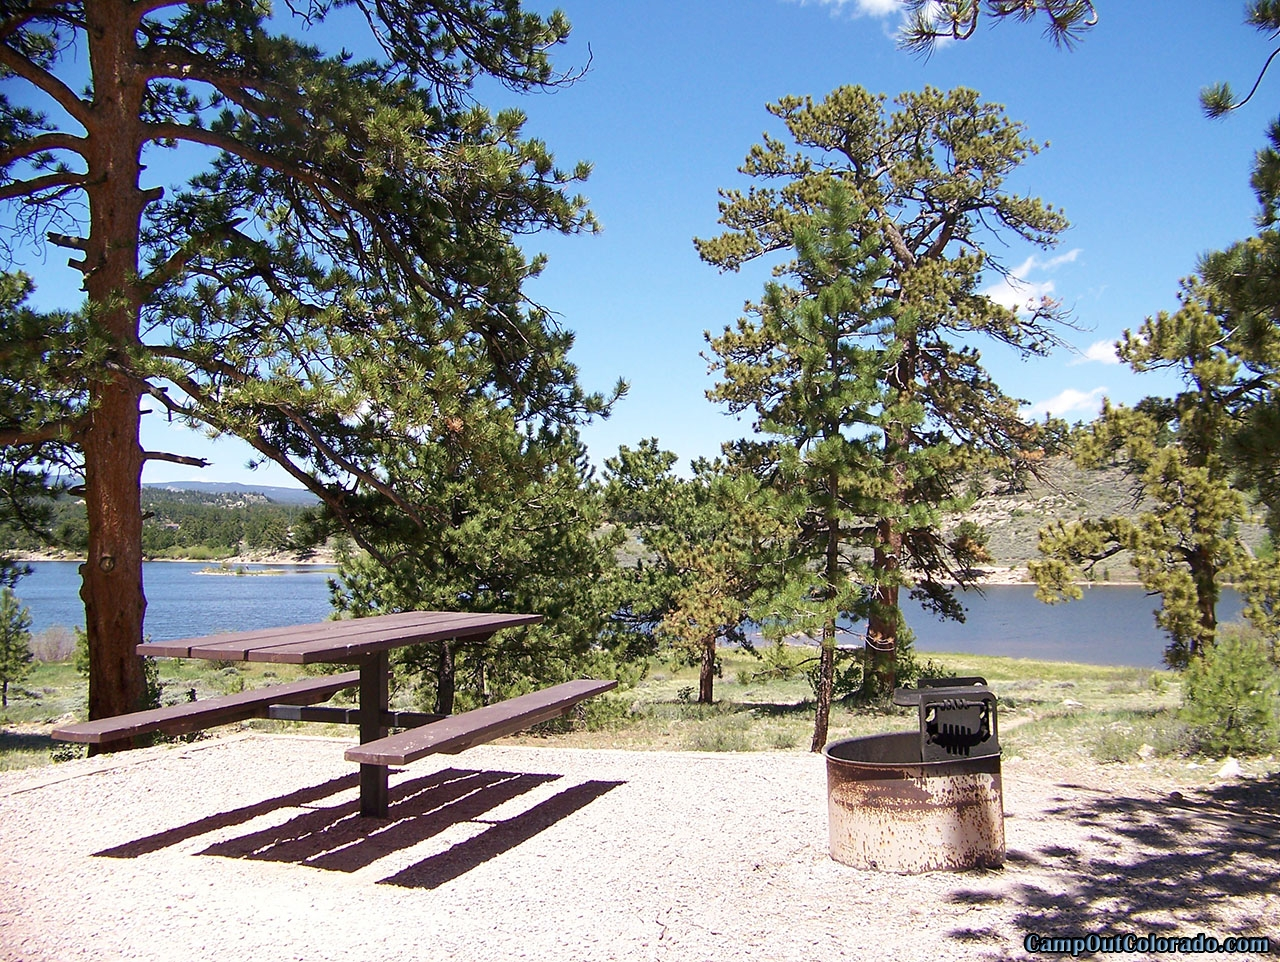 West Lake Campground Camping Review - Camp Out Colorado